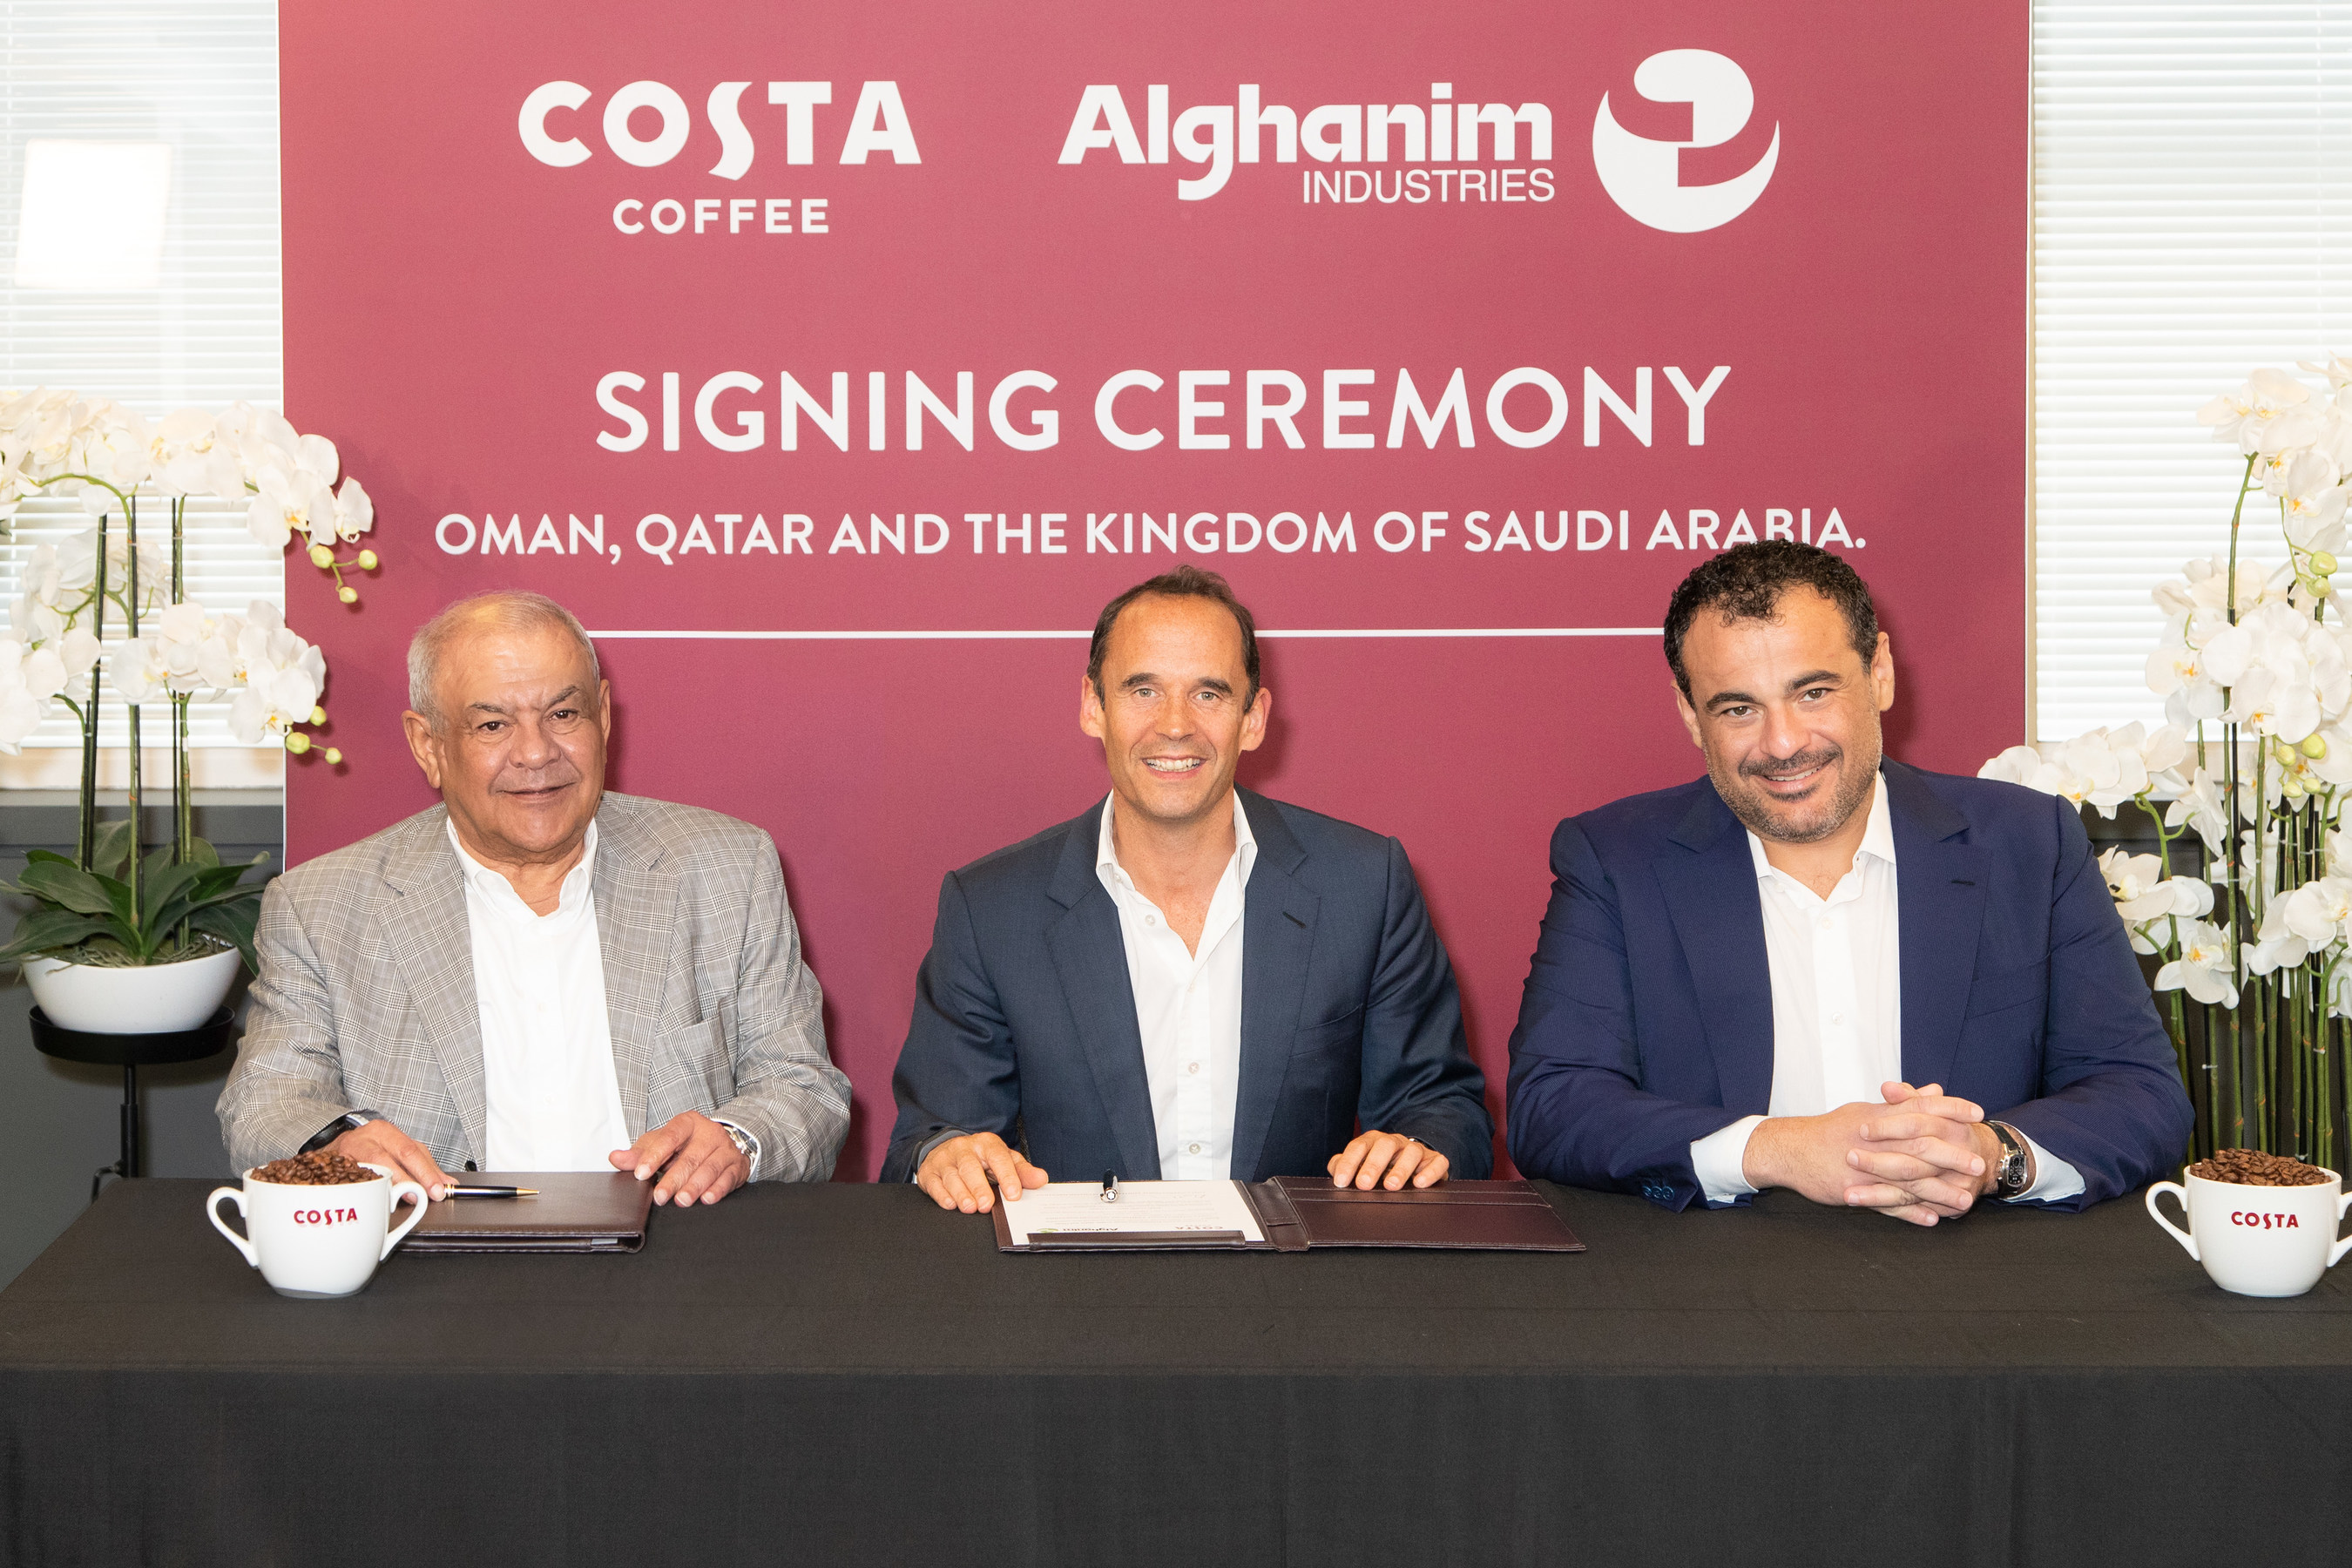 Alghanim Industries Will Open Costa Coffee Branches in Saudi Arabia